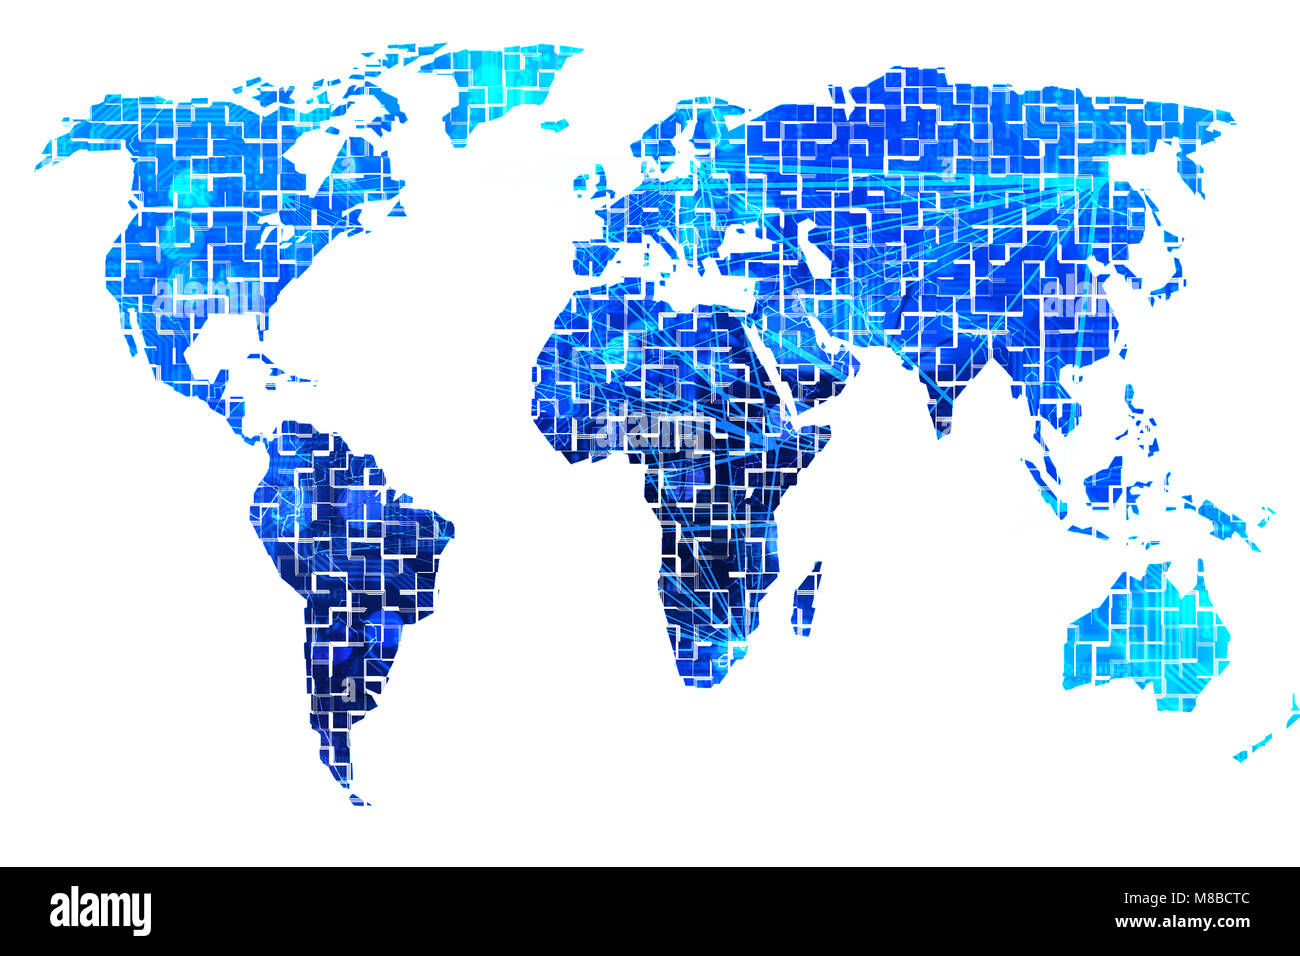 Digital World Map With All Continents Stock Photo 177272492 Alamy